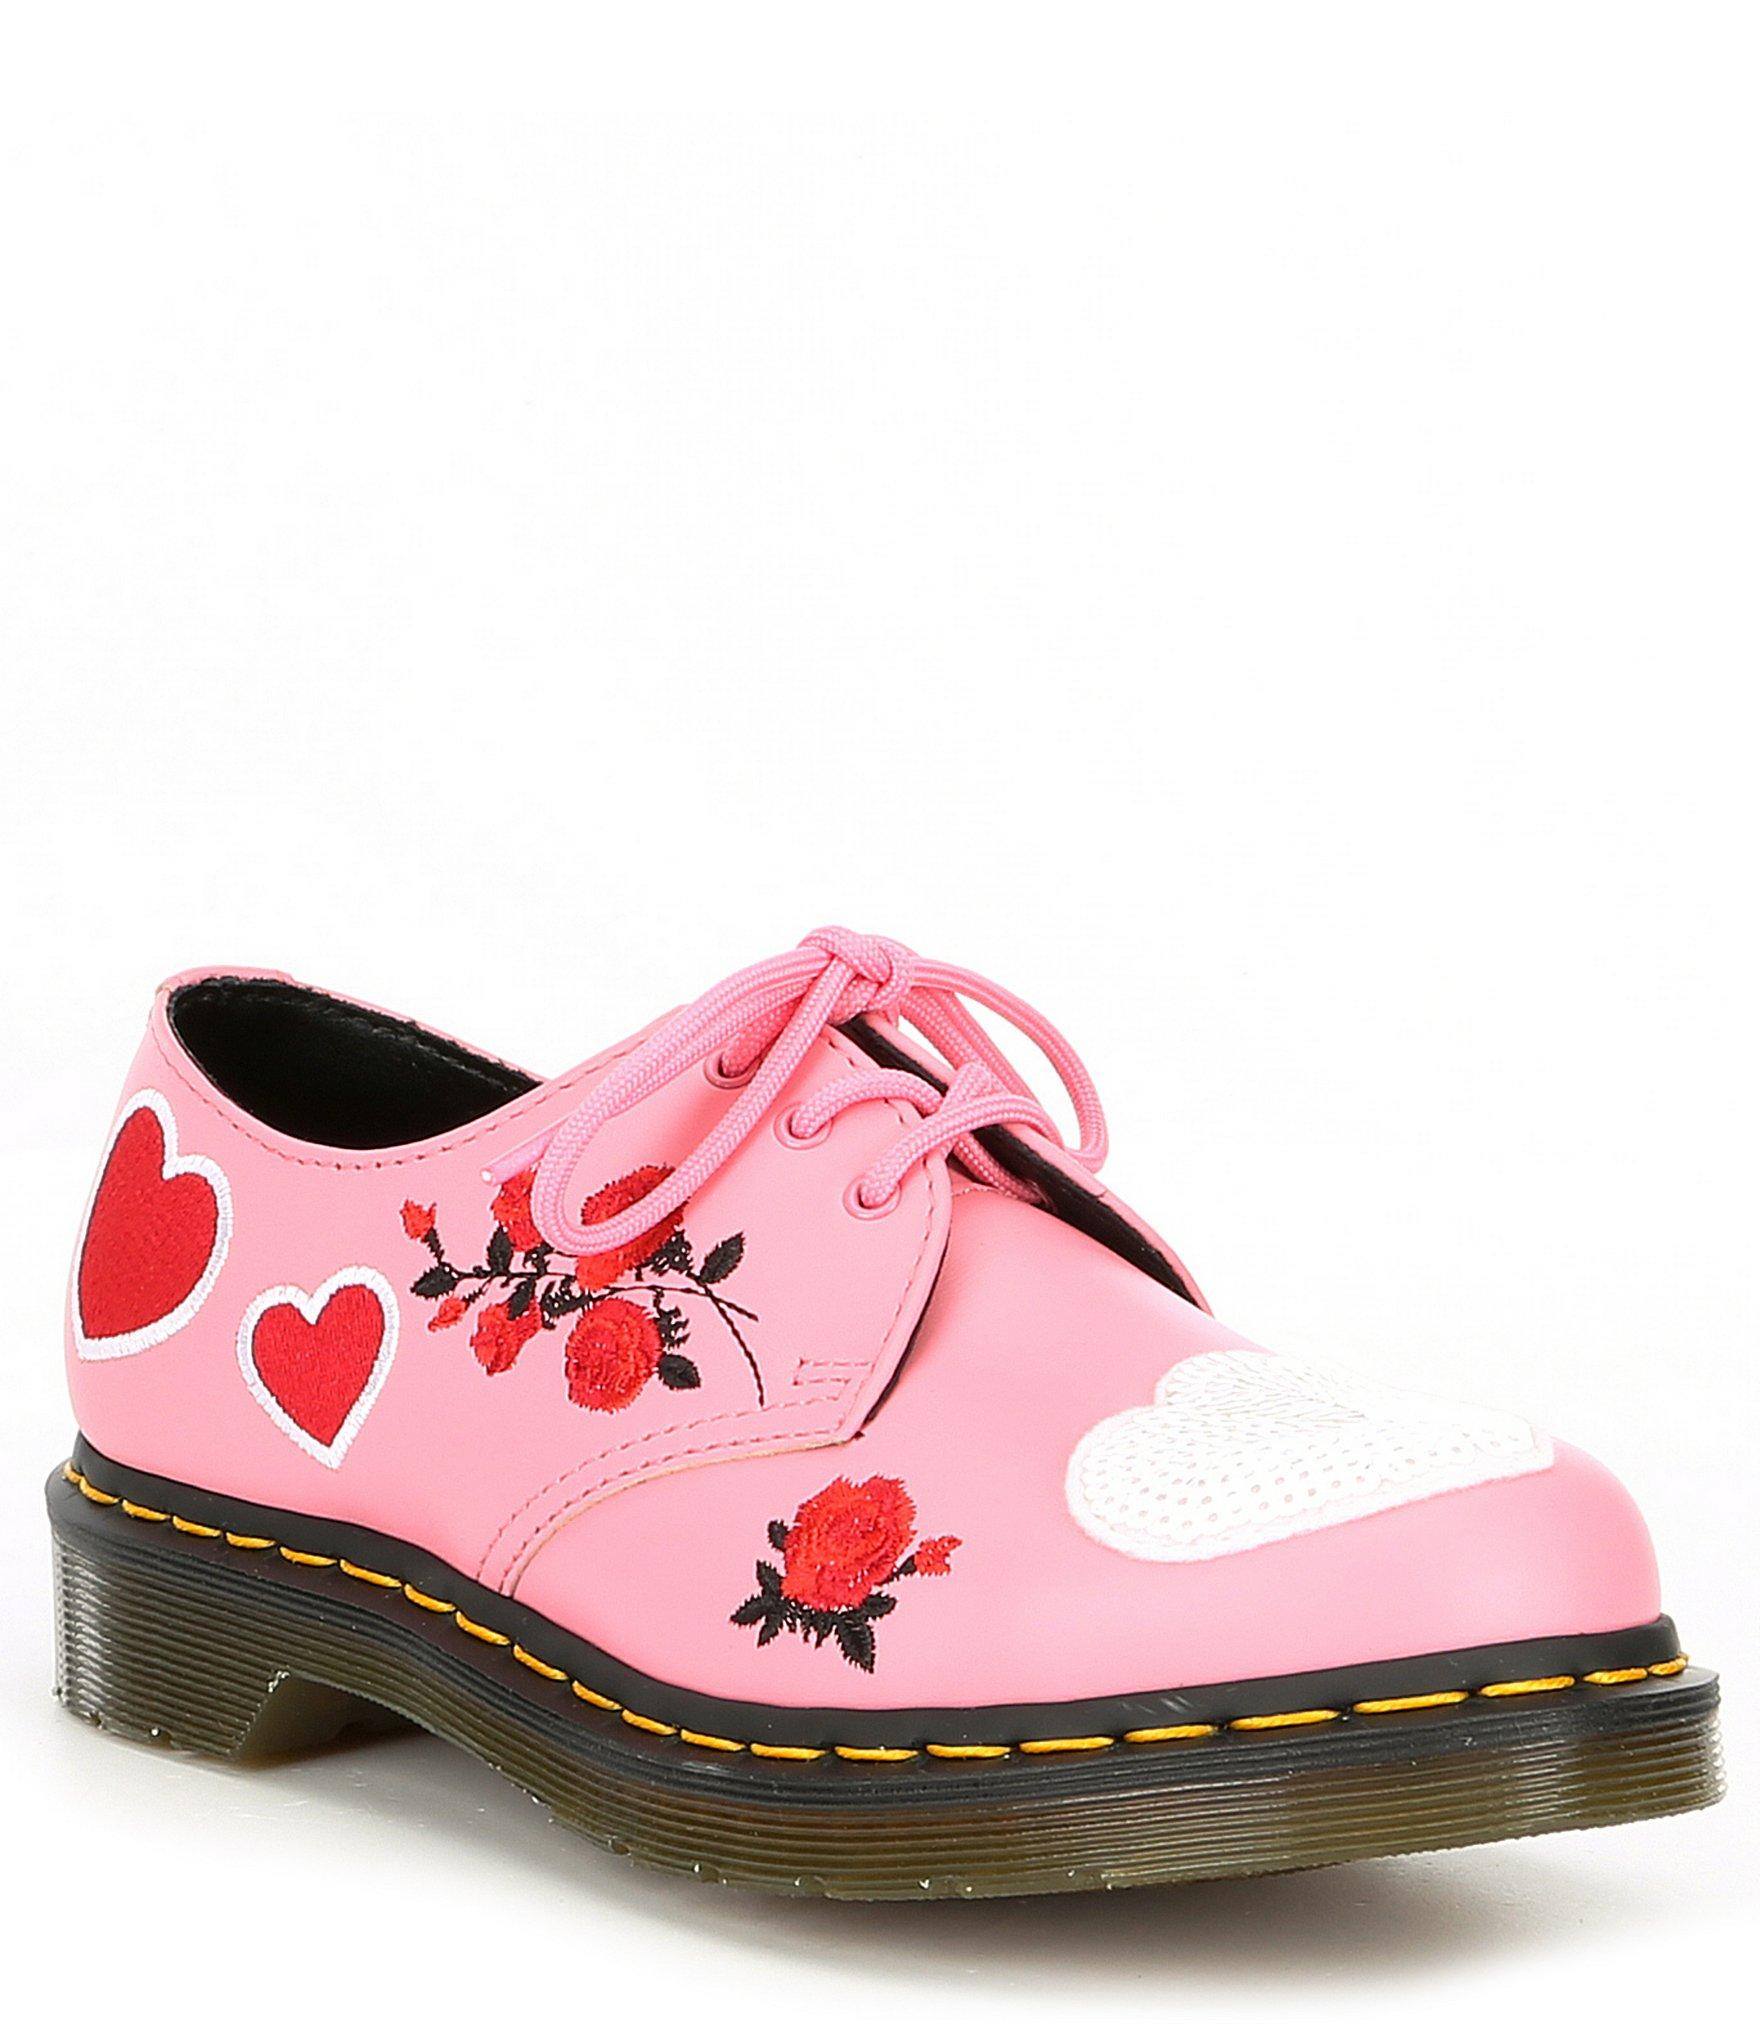 Dr martens pink 1461 hearts flat shoes | styling in 2019